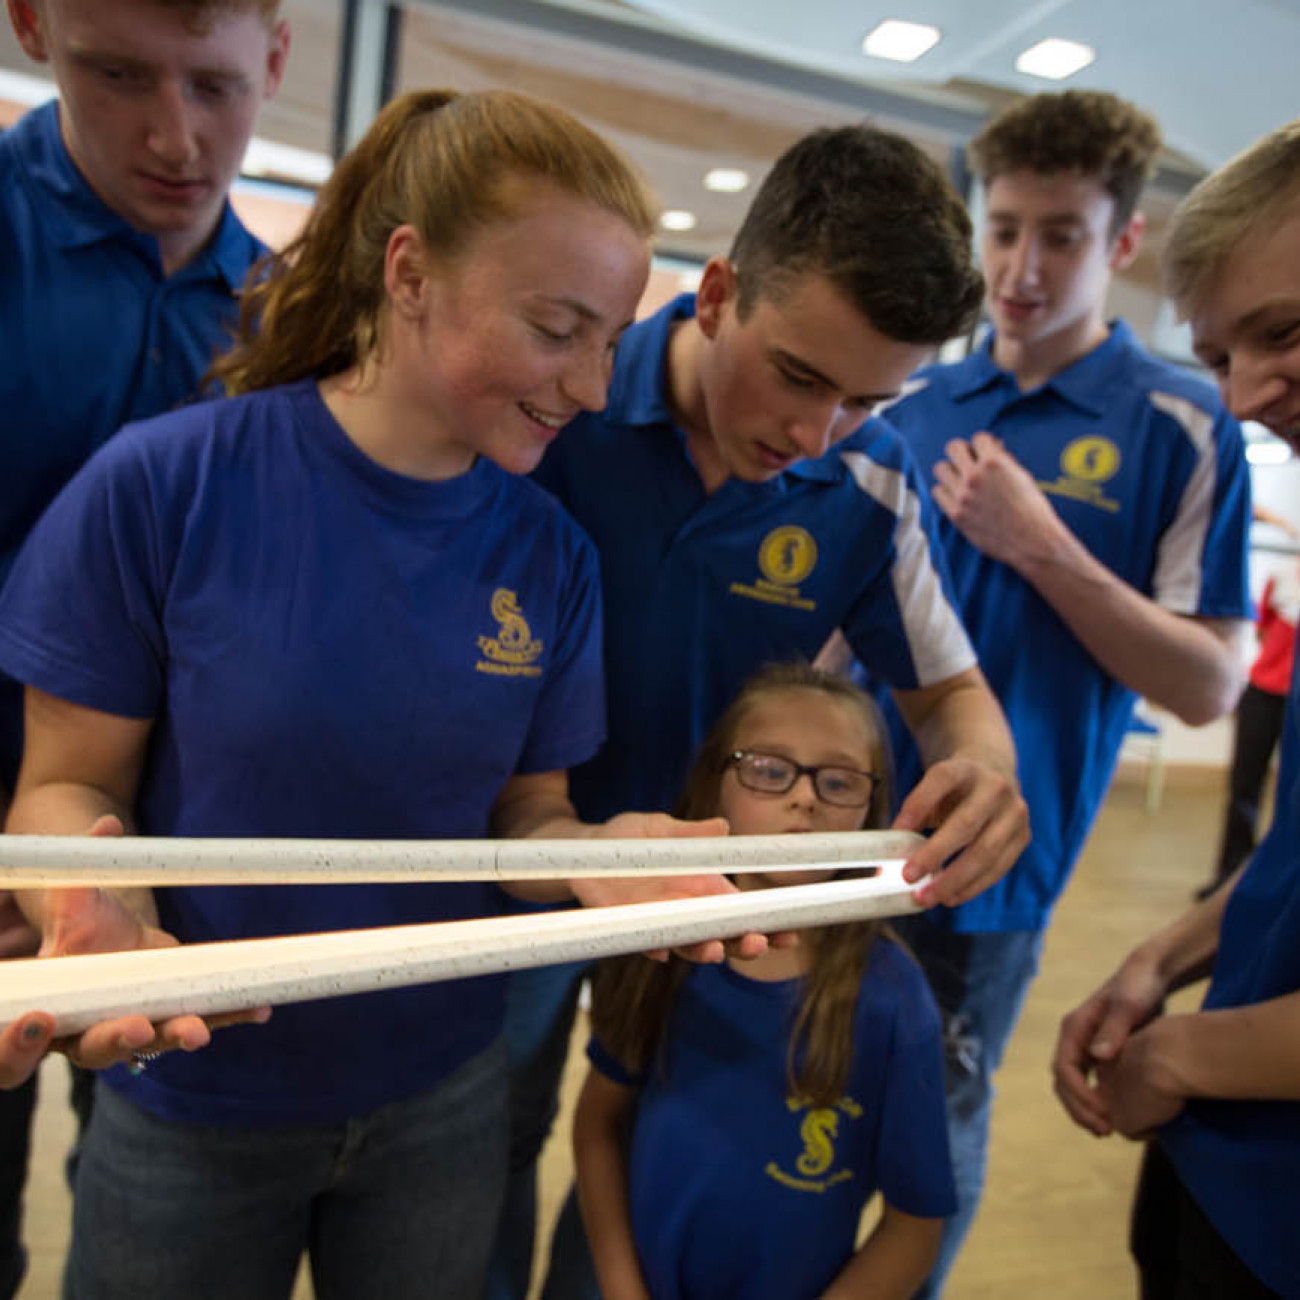 The Queen's Baton, carried by swimmers of the Bangor Swimming Team, at the Aurora Aquatic Centre, in Bangor, in Northern Ireland, on 28 August 2017.